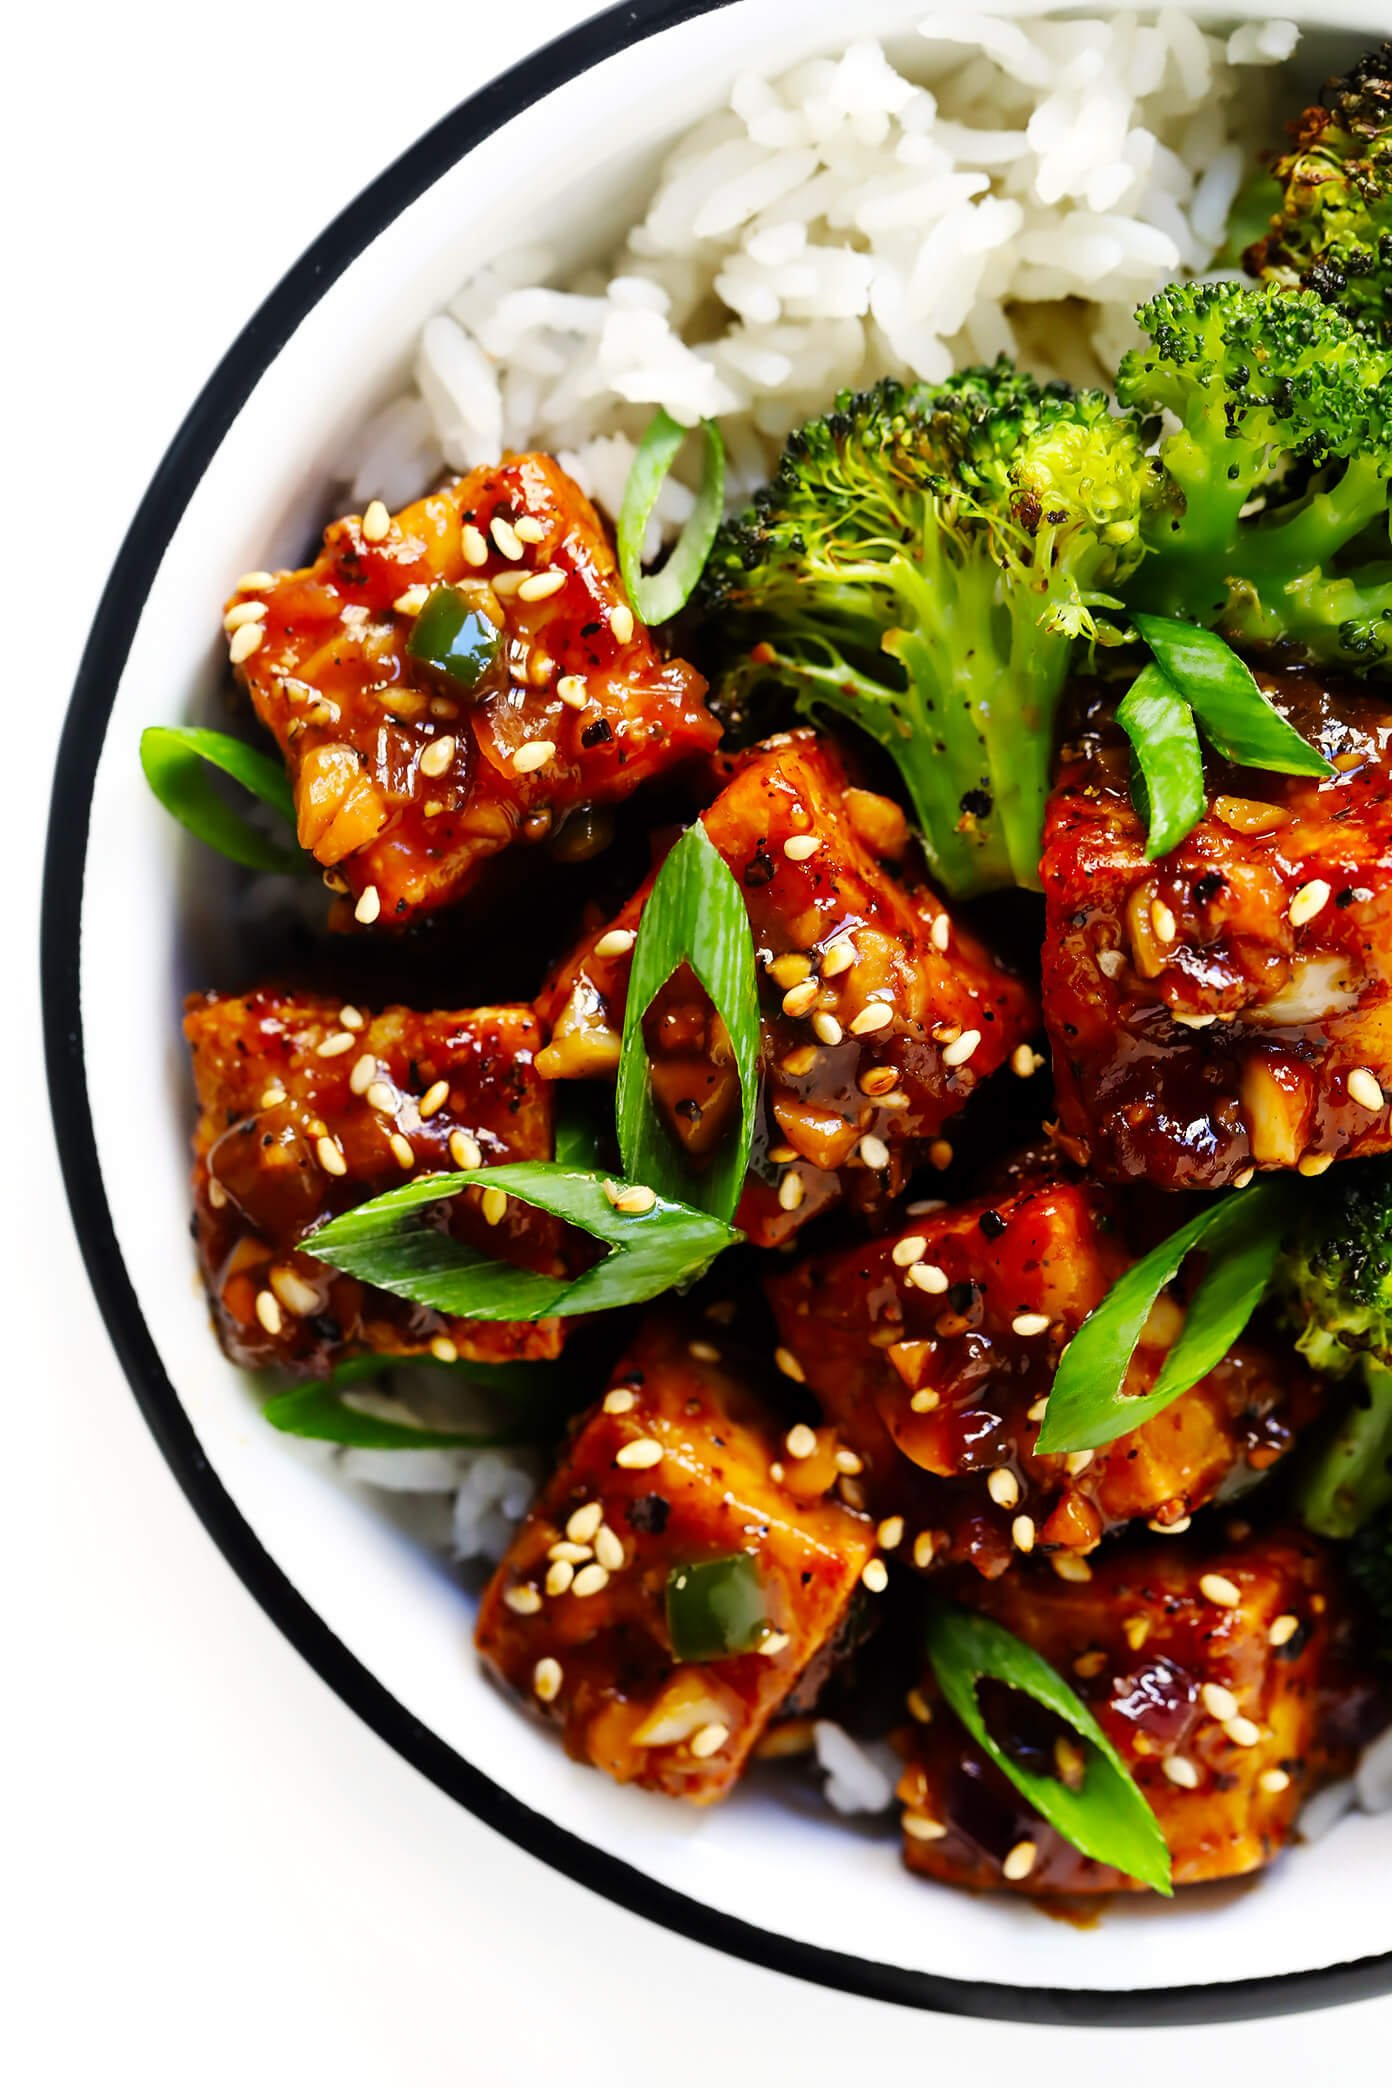 Black Pepper Garlic Tofu with Roasted Broccoli